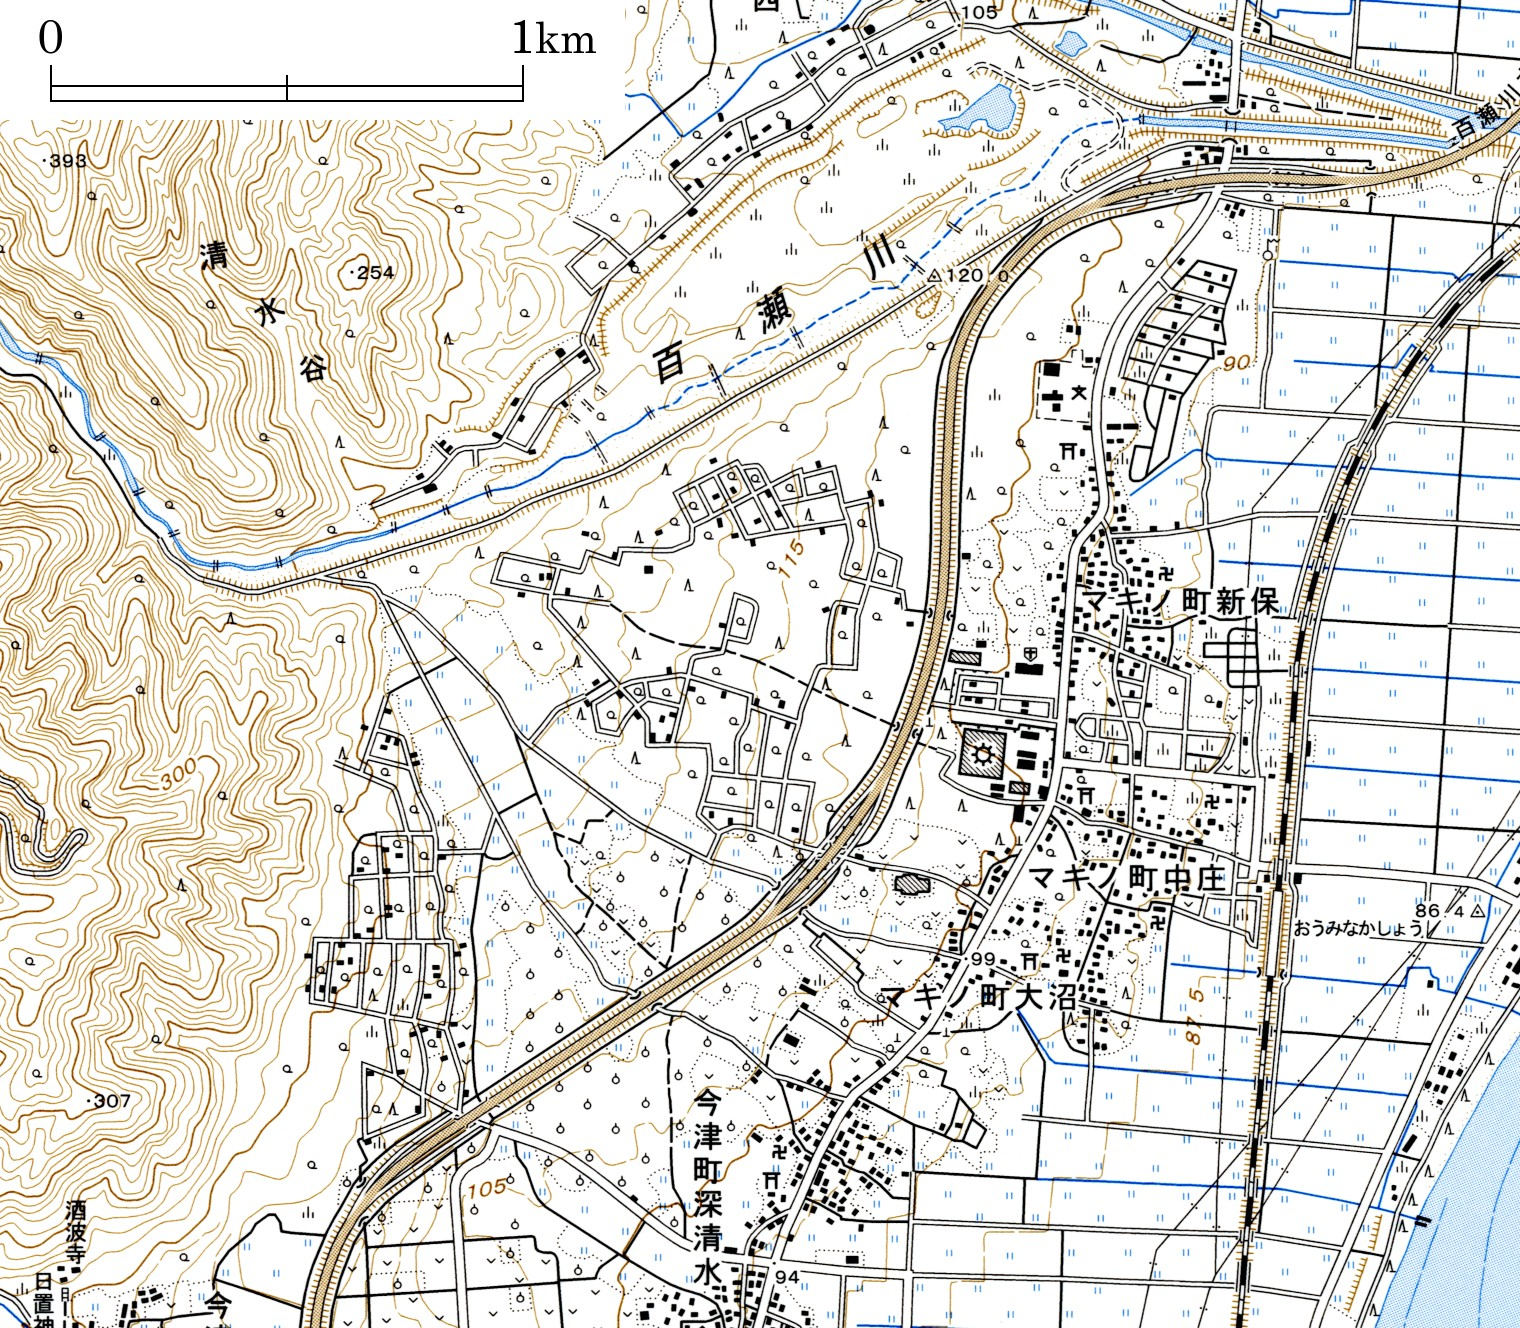 Alluvial Fan Topographic Map : a4 地図 印刷 : 印刷